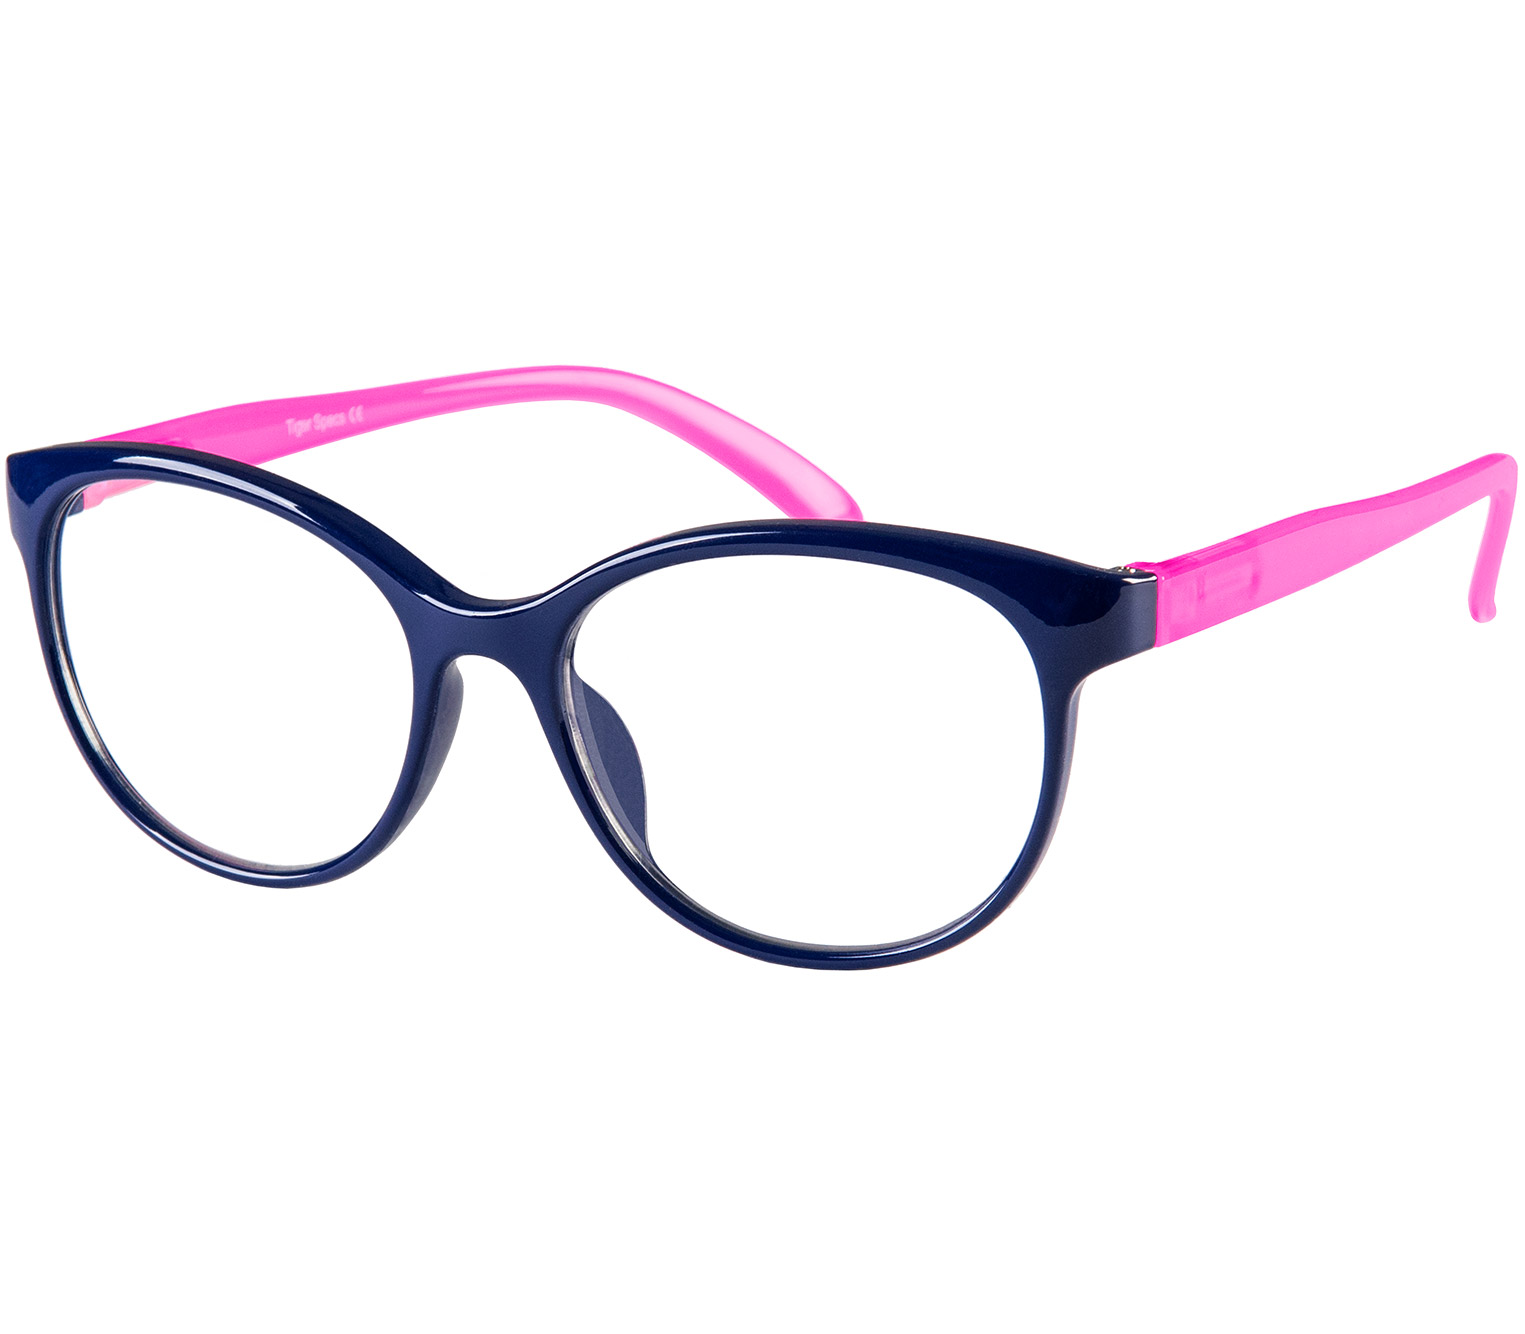 Main Image (Angle) - Angel (Blue) Cat Eye Reading Glasses